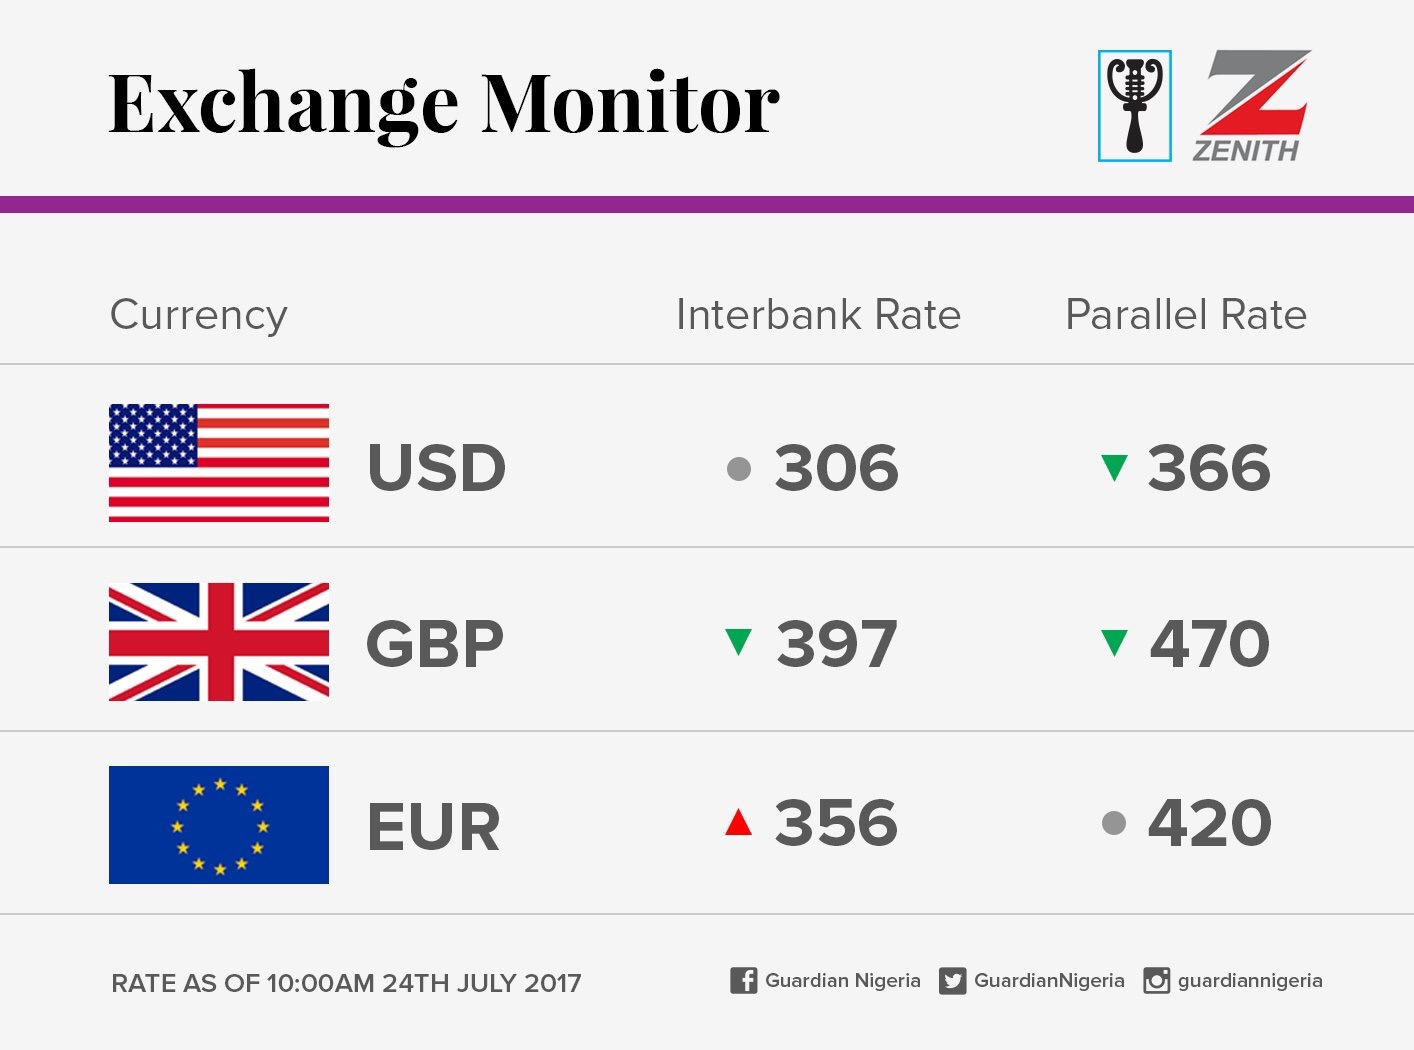 Exchange Rate For 24th July 2017